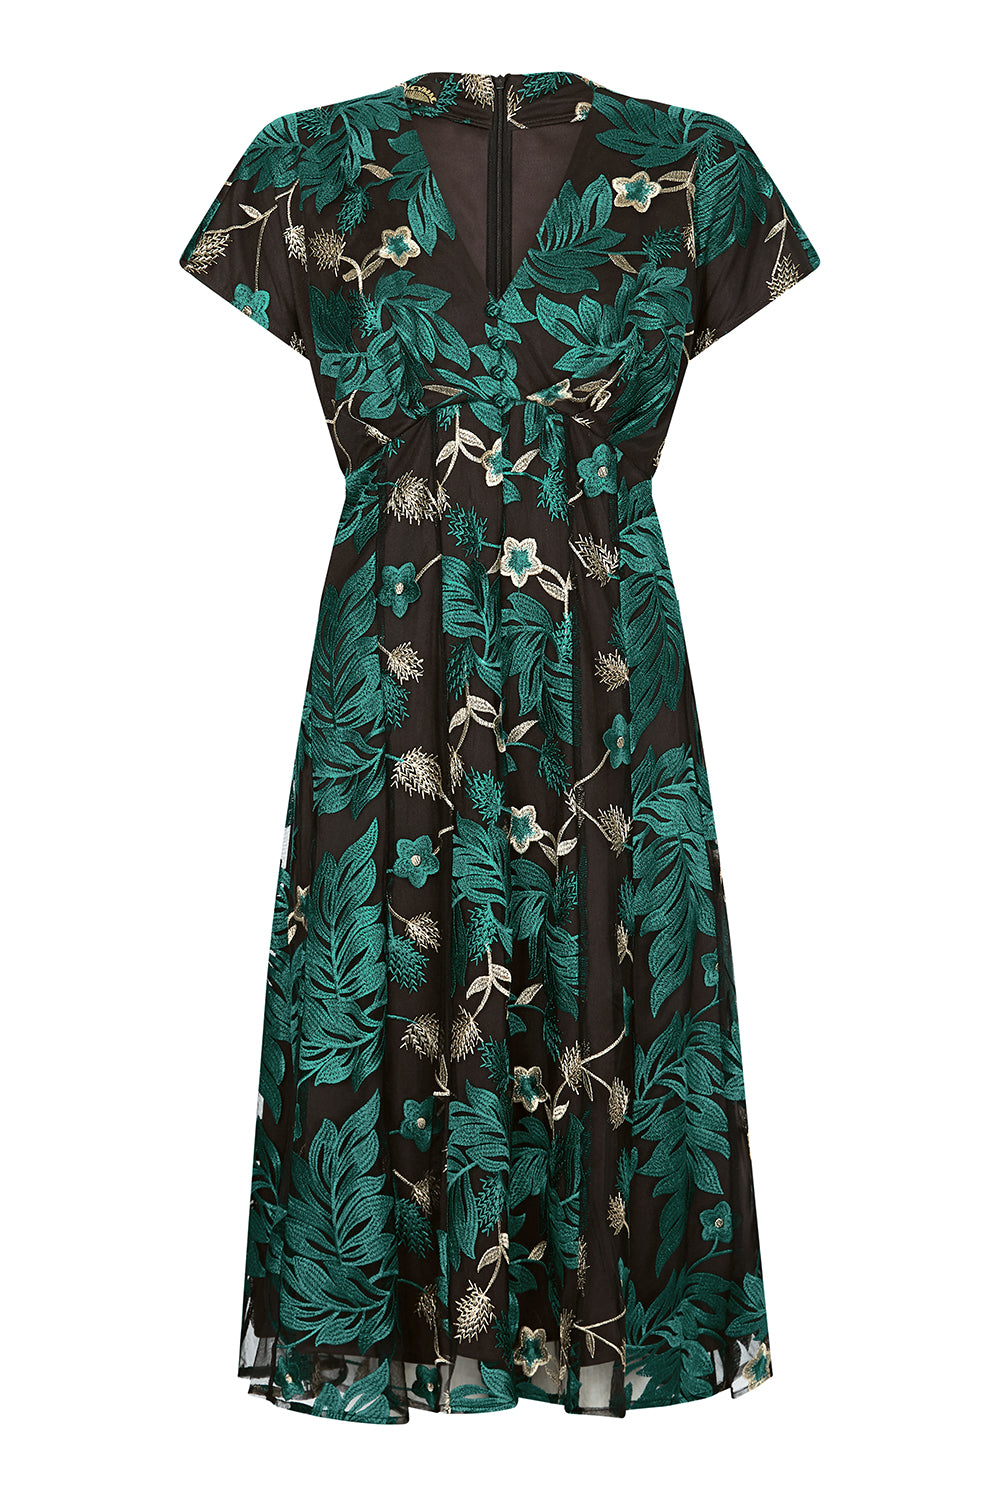 Valeria dress in emerald embroidered pine lace - front mannequin shot